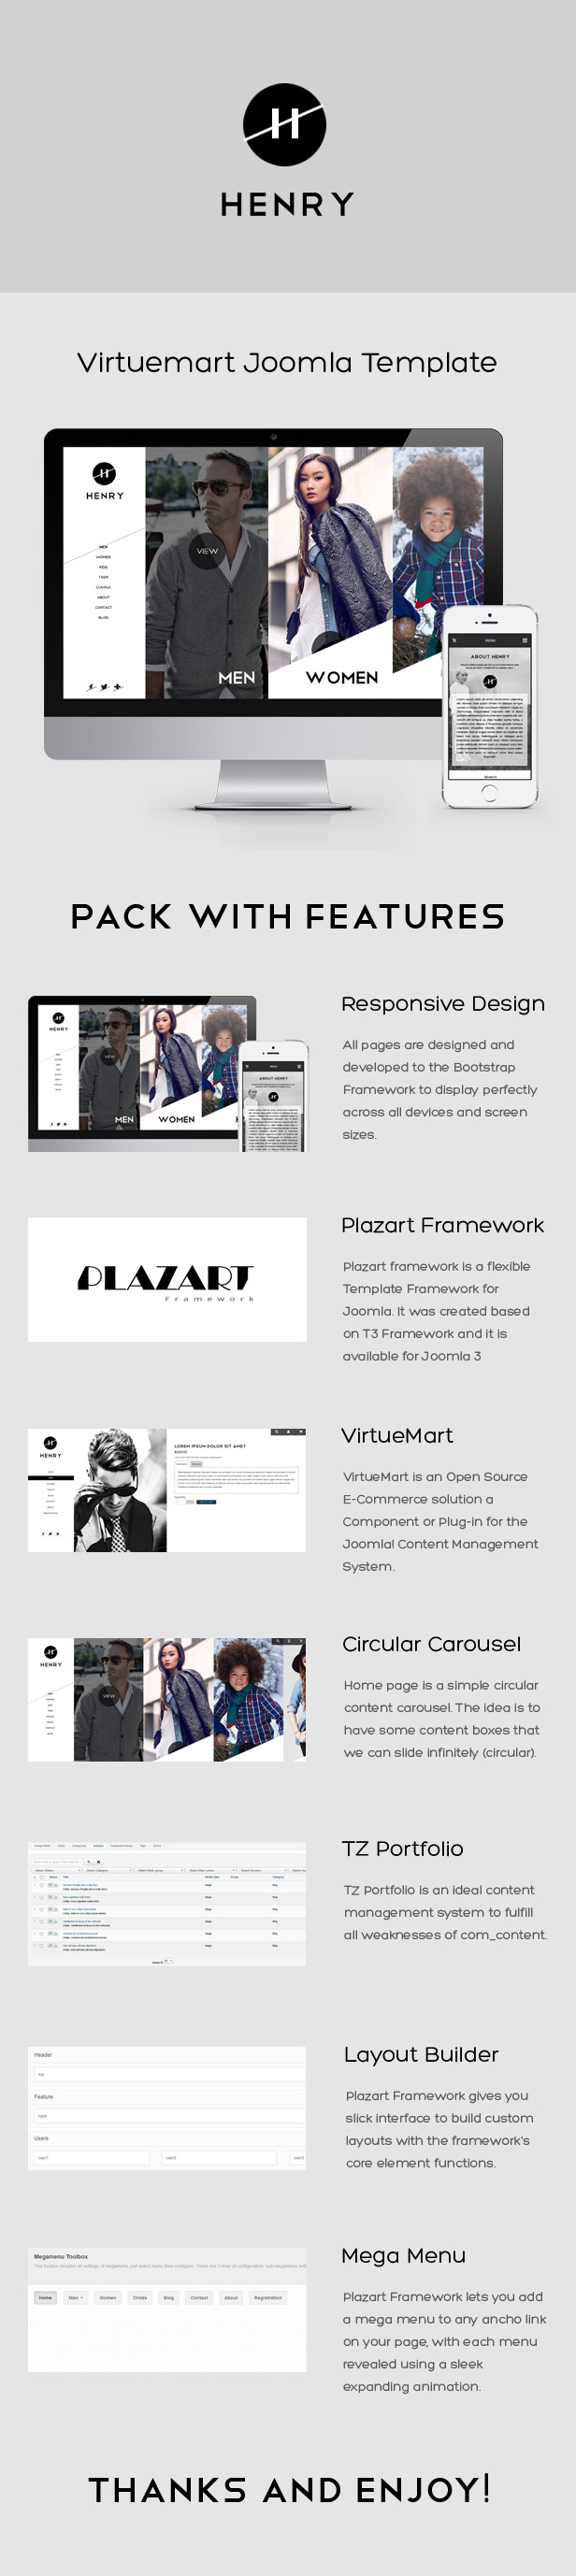 Henry - VirtueMart Joomla Template